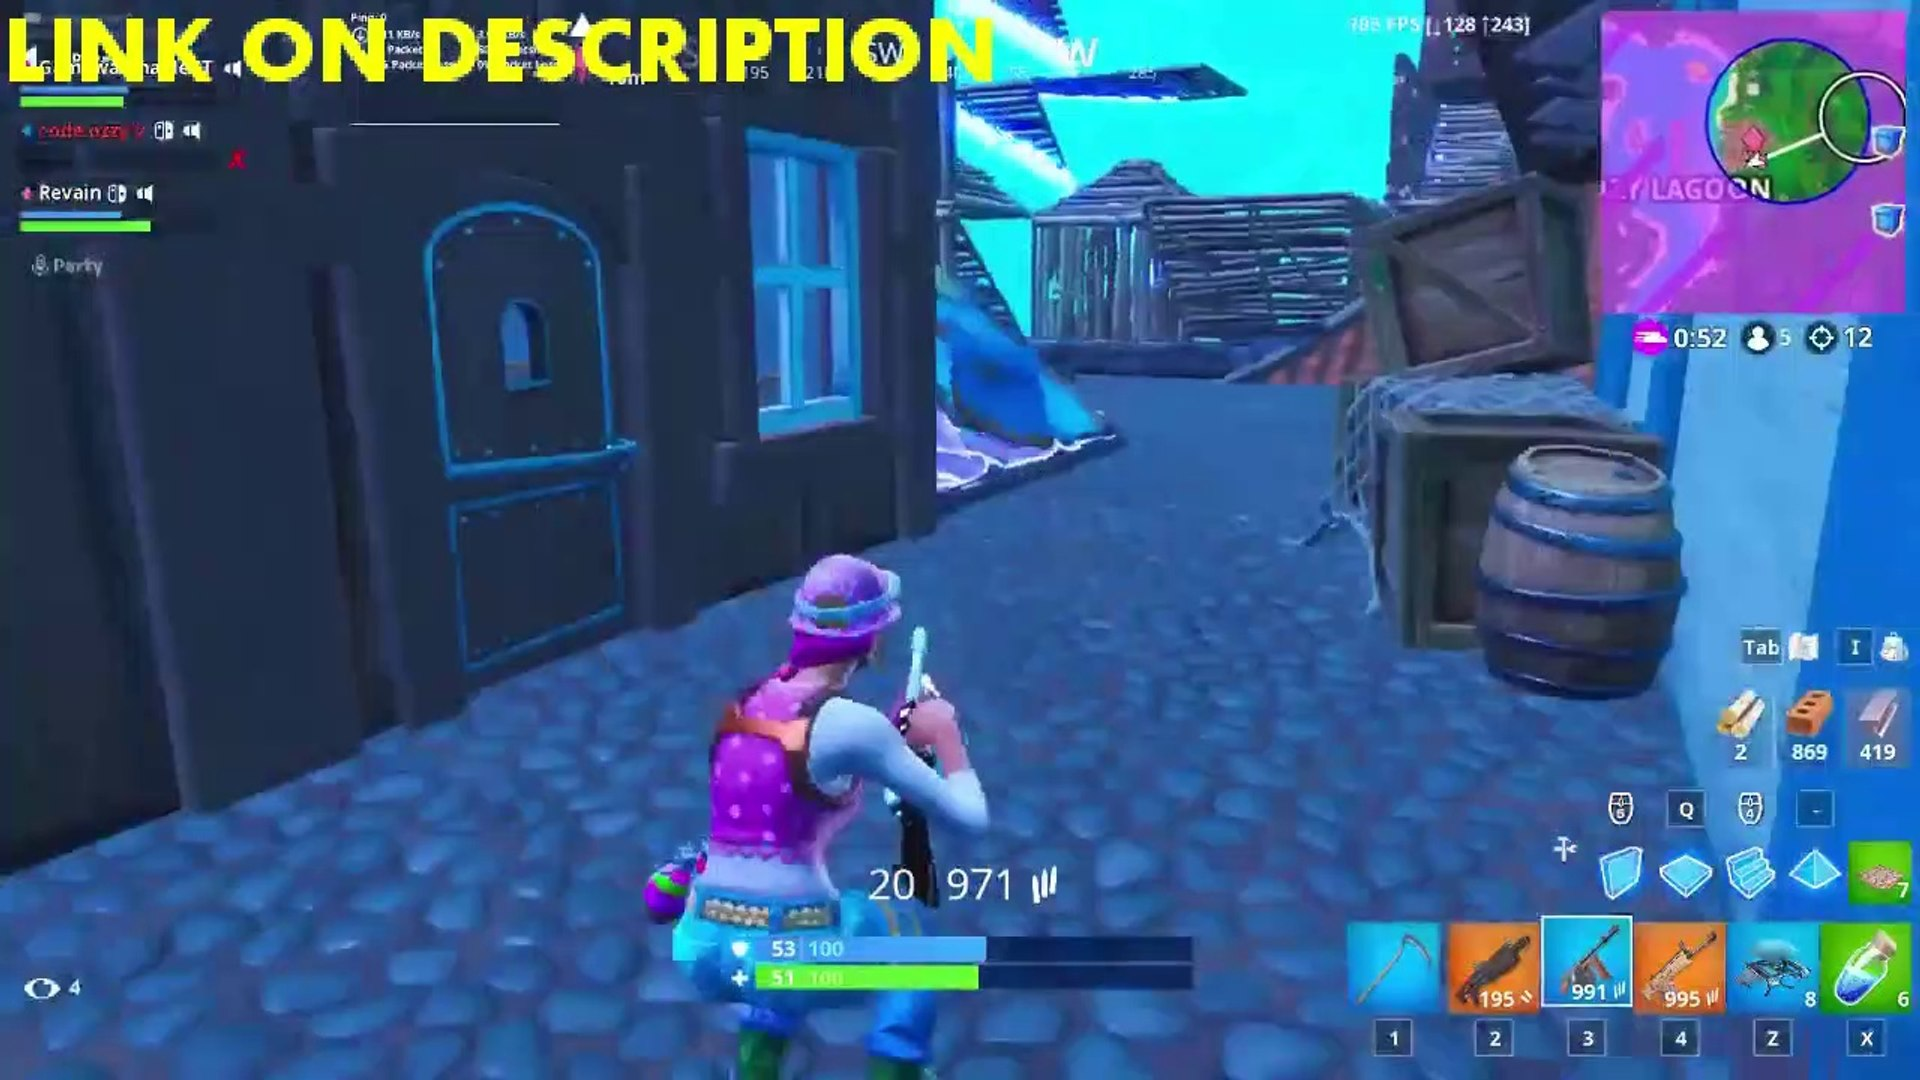 Freevbucks Co i found the first free vbucks glitch in fortnite (free vbucks trick!)